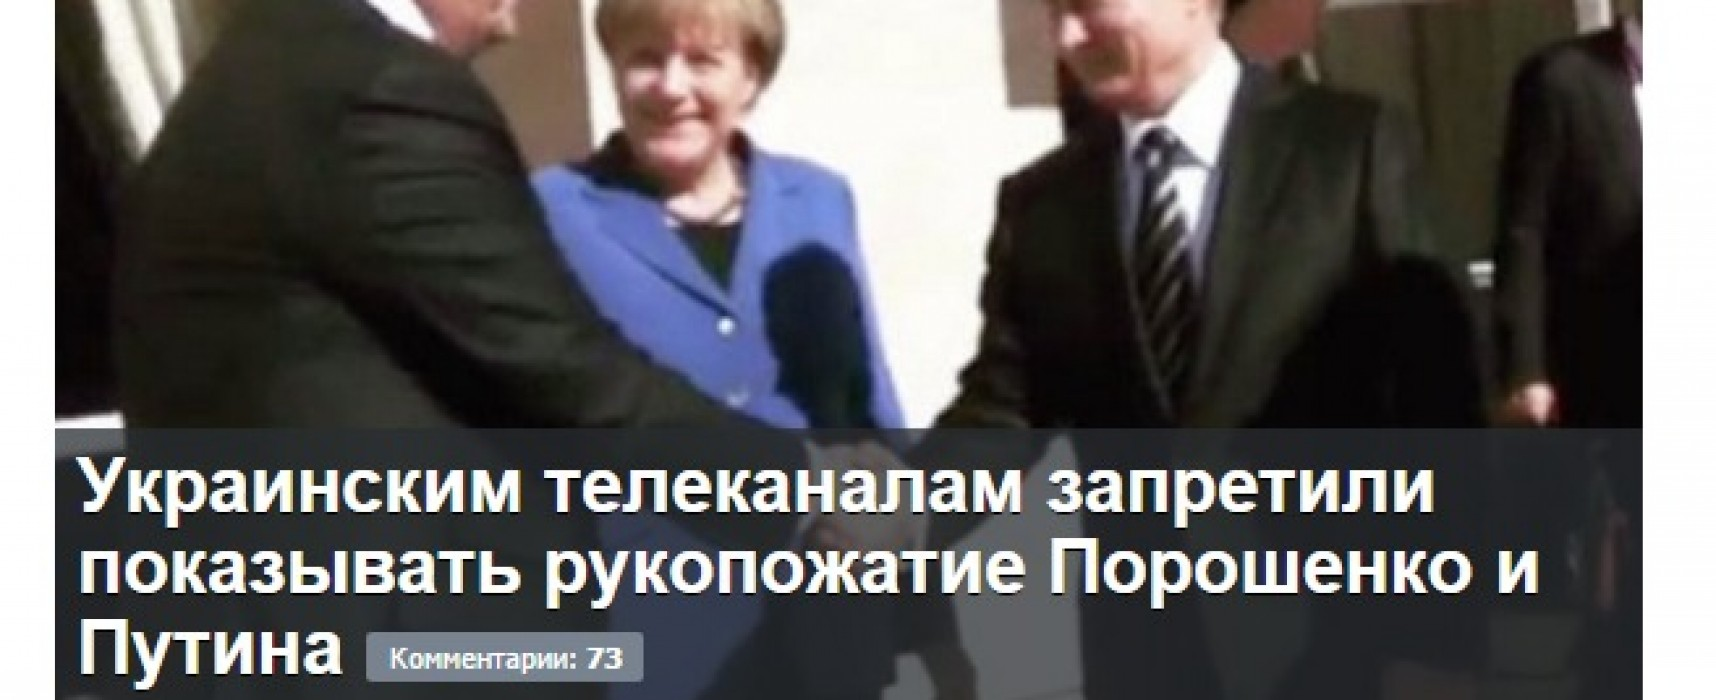 Fake: Ukrainian TV Forbidden from Showing Handshake between Putin and Poroshenko